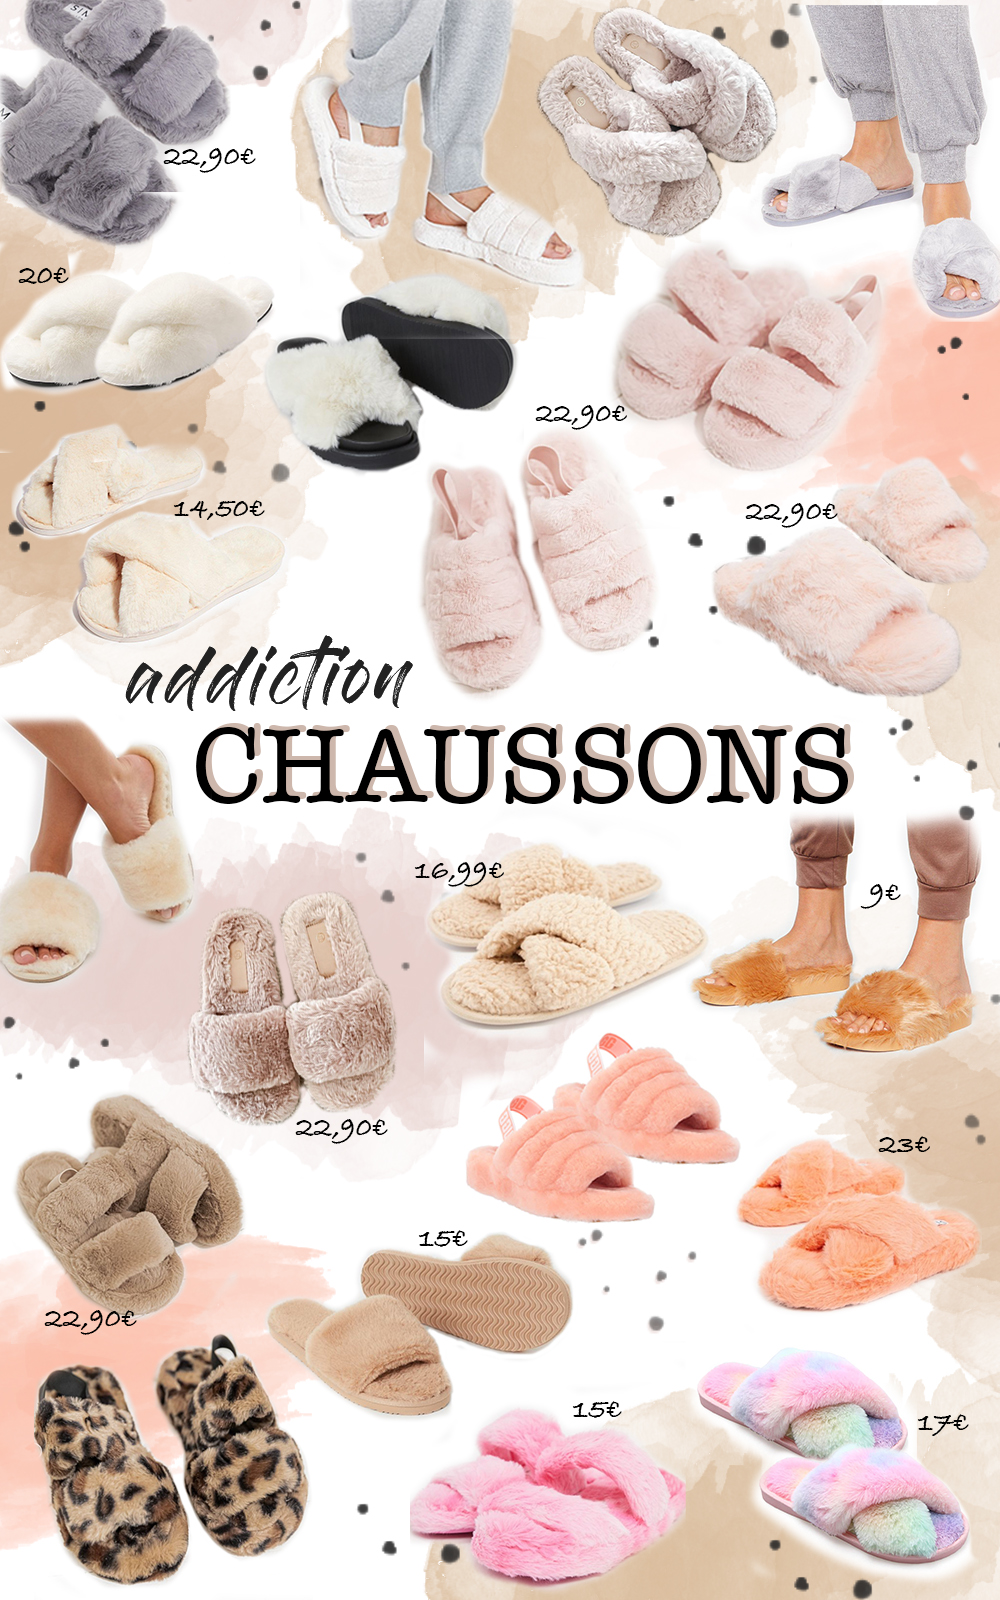 ADDICTION CHAUSSONS